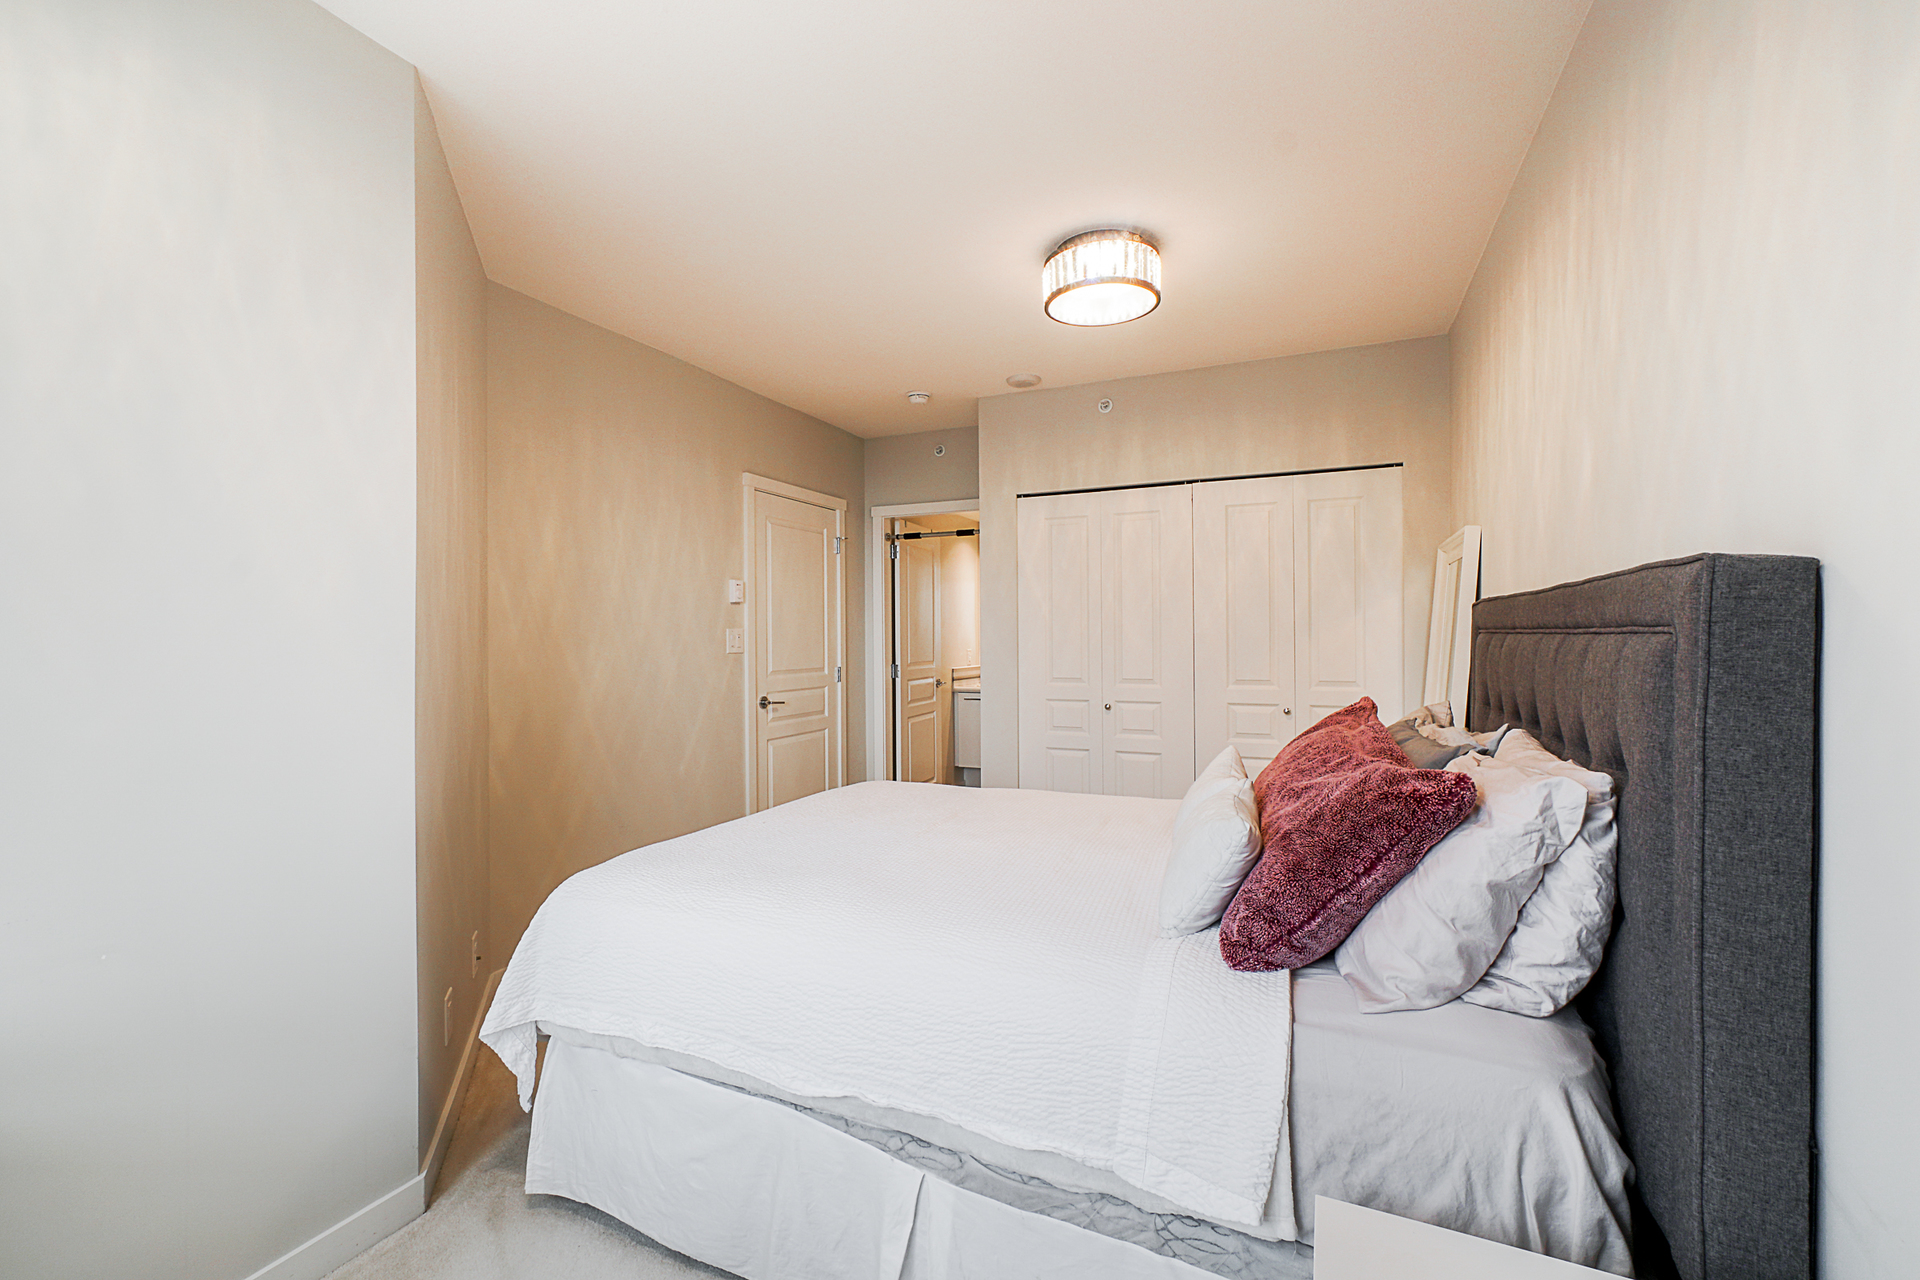 unit-2705-3093-windsor-gate-coquitlam-21 at 2705 - 3093 Windsor Gate, New Horizons, Coquitlam